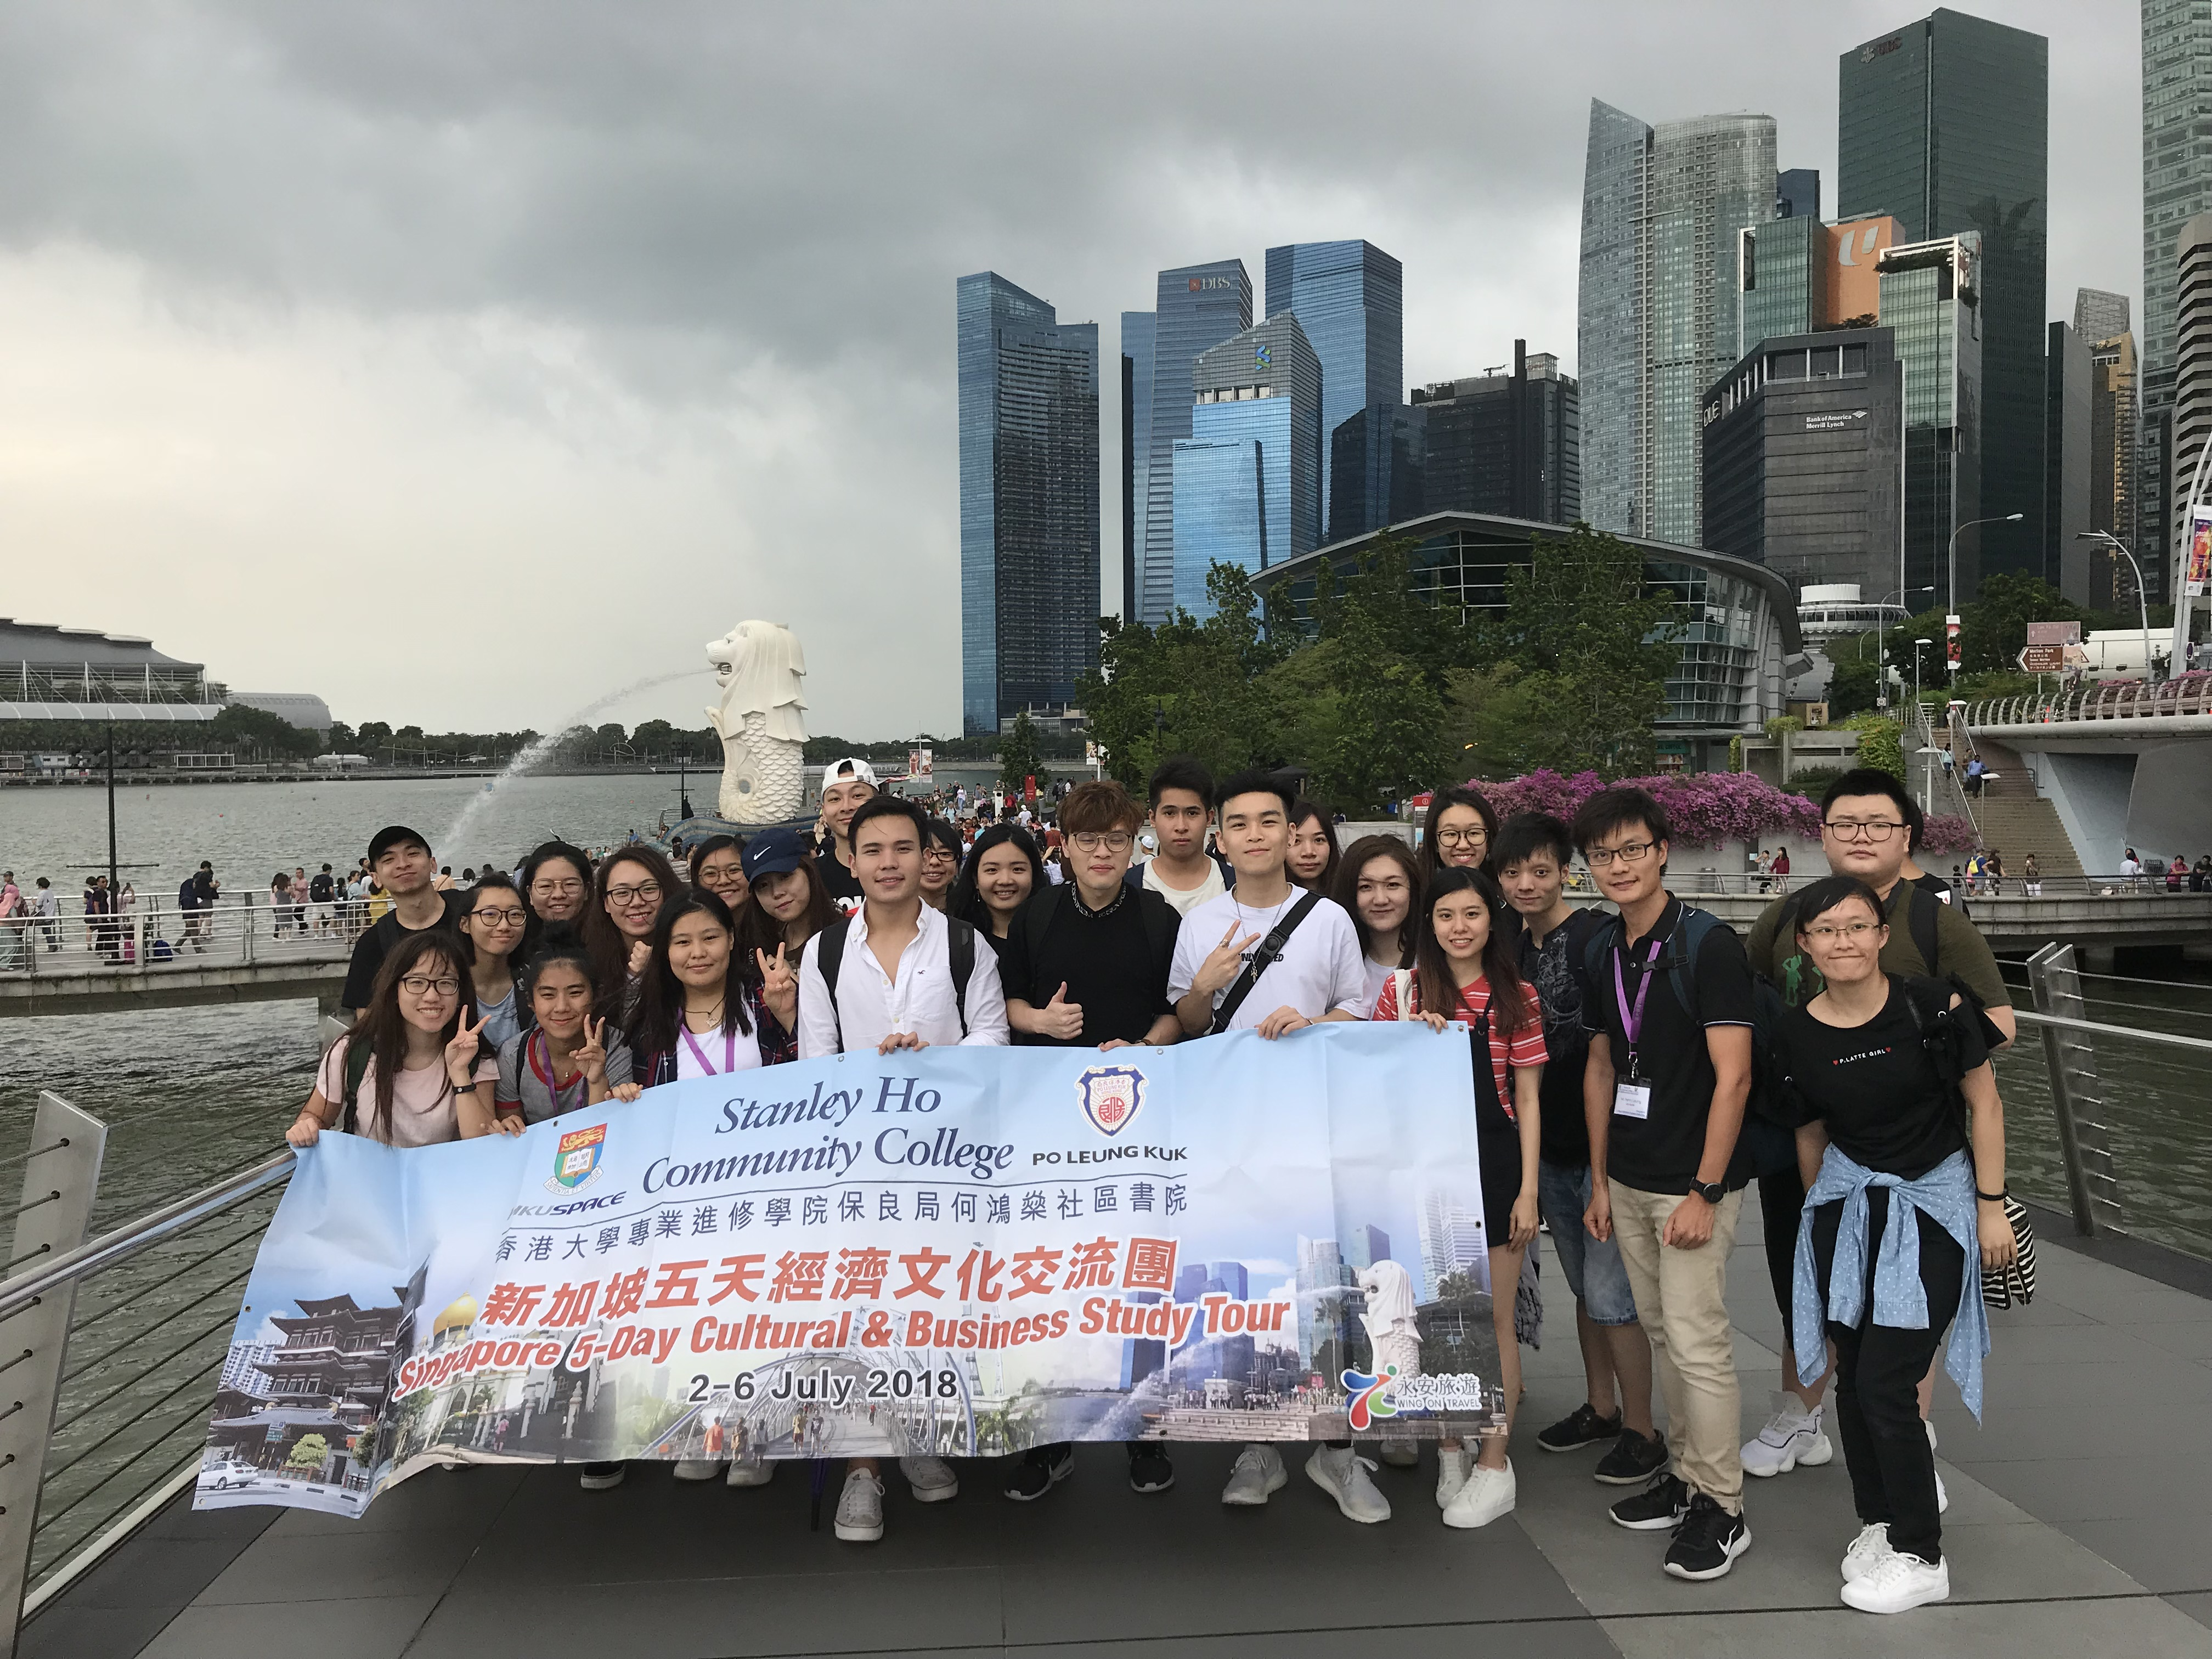 Singapore Business and Cultural Study Tour 2018 - Photo - 1